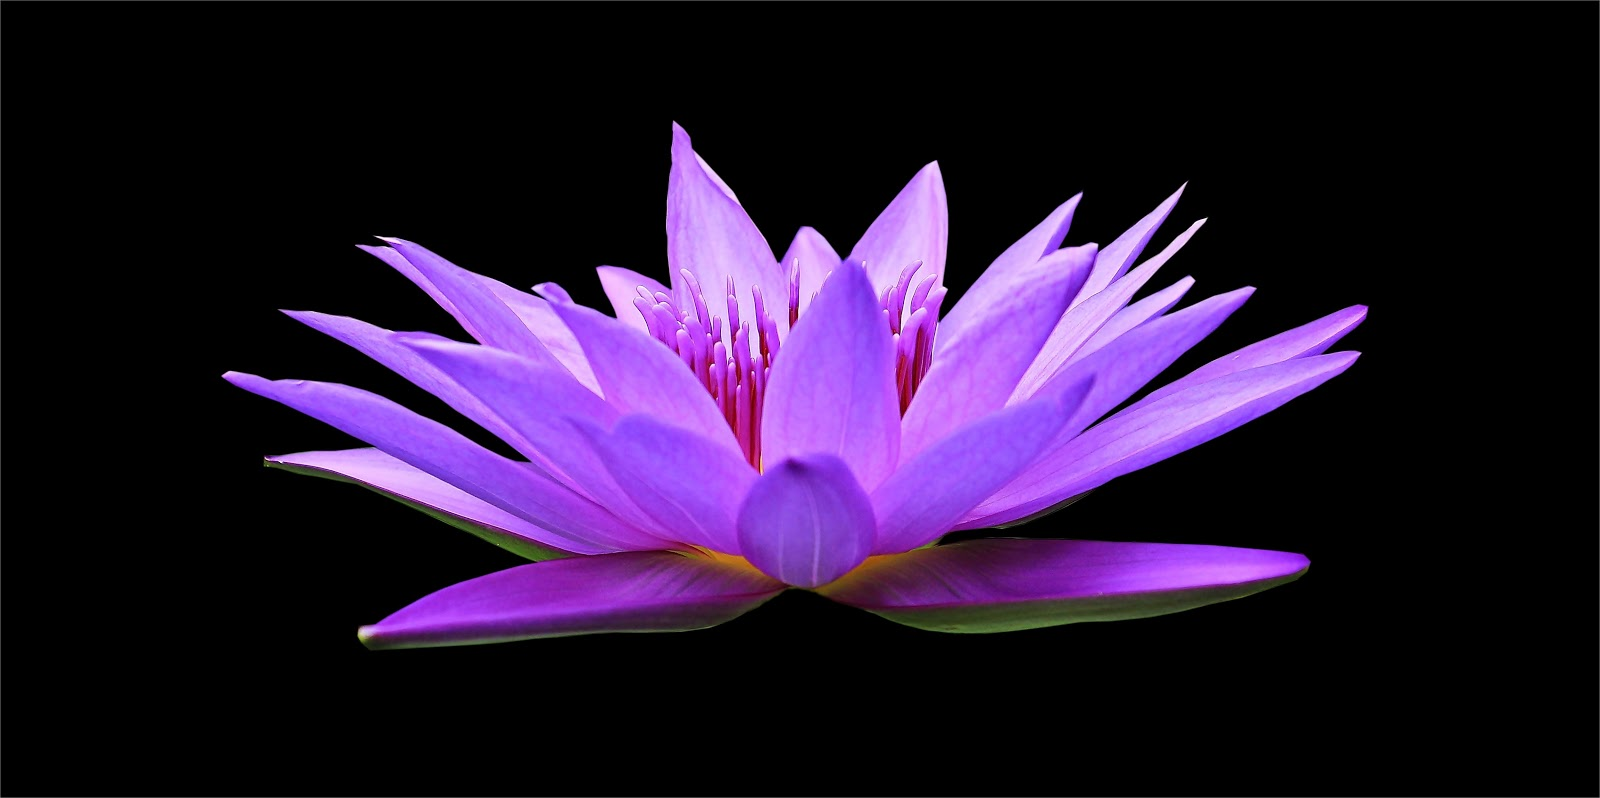 water-lily, flower photo